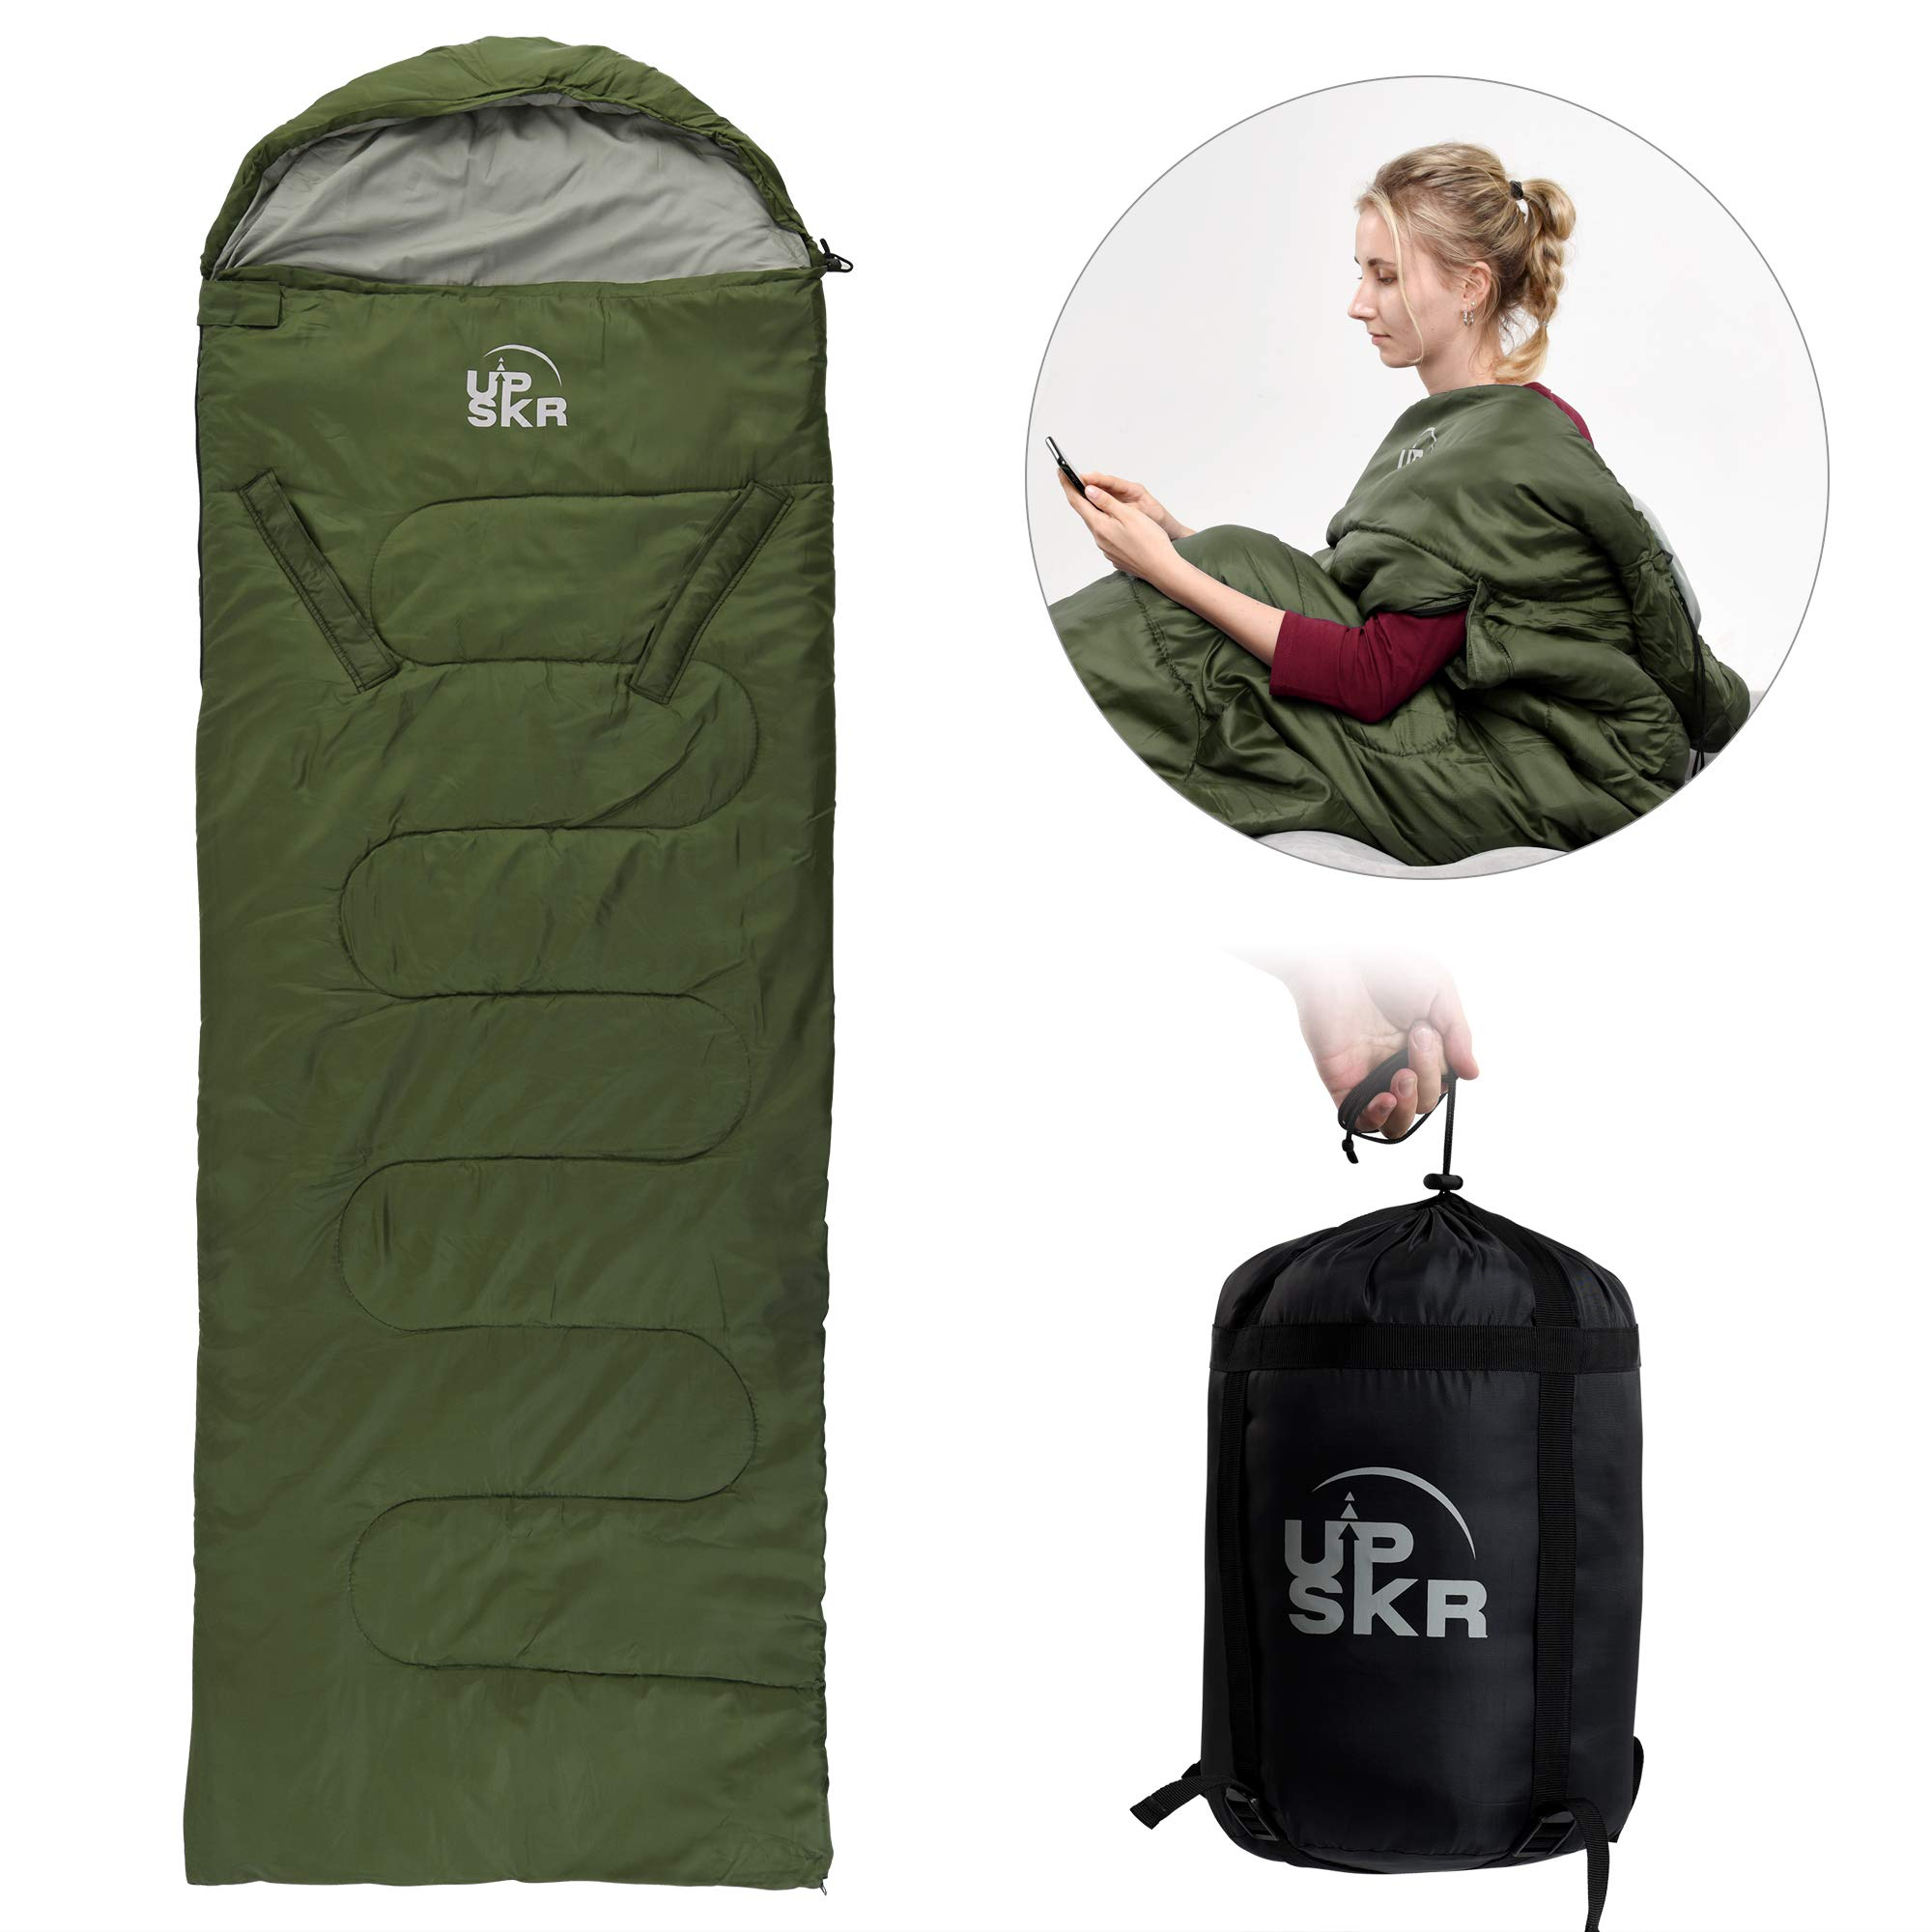 UPSKR Sleeping Bag Lightweight & Waterproof for Adults & Kids Cold Weather, 4 Season Rectangular Sleeping Bags Great for Indoor & Outdoor Use Hiking Backpacking Camping Traveling with Compression Sack by UPSKR